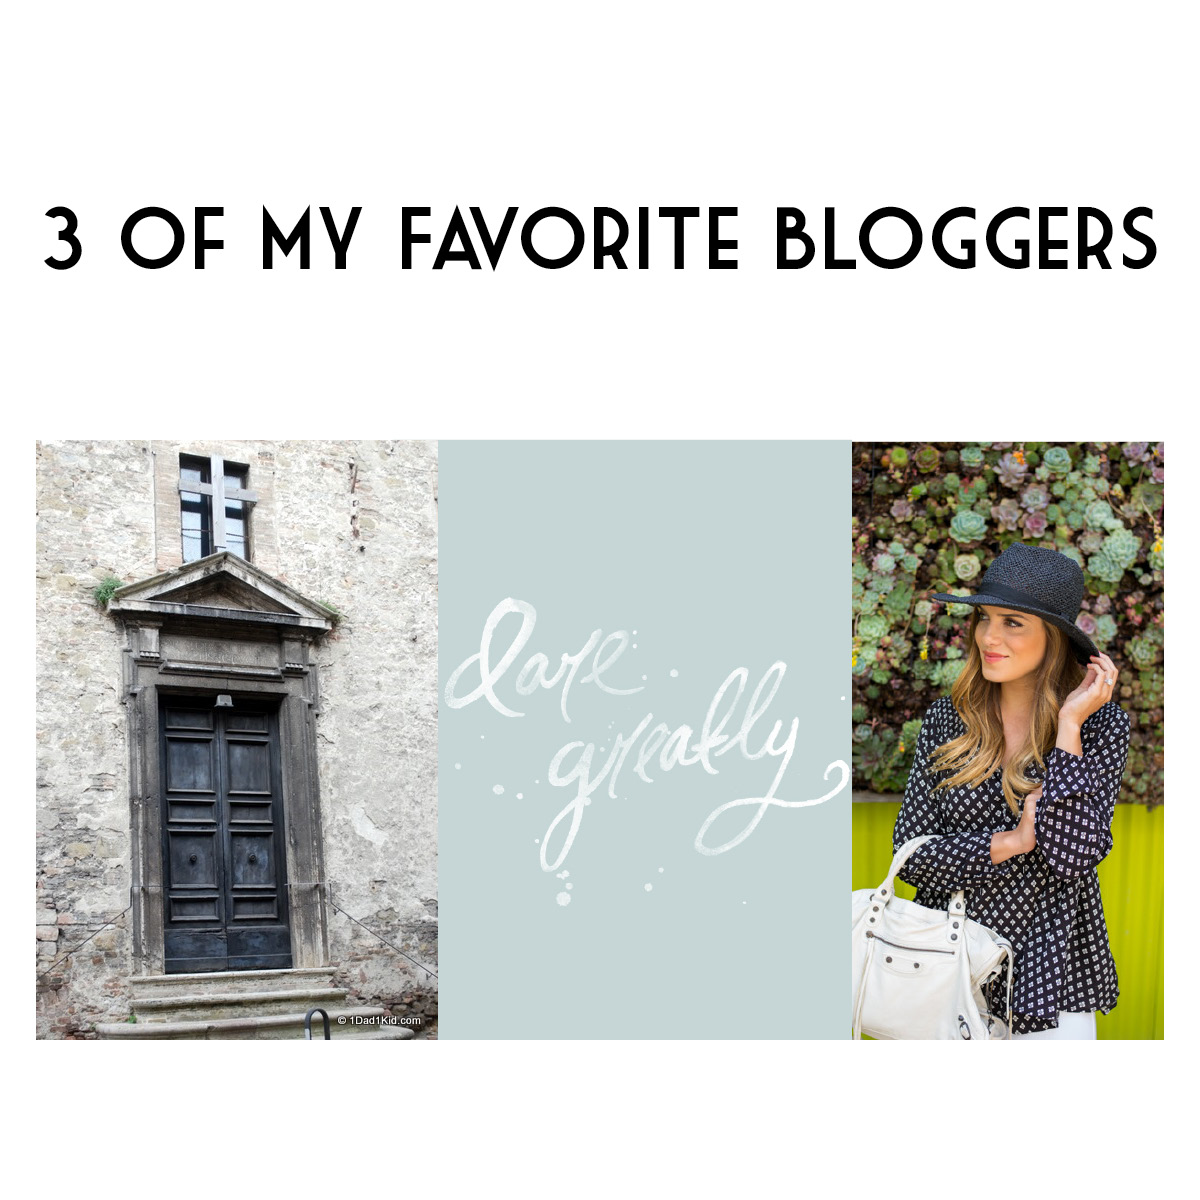 3 of My Favorite Bloggers